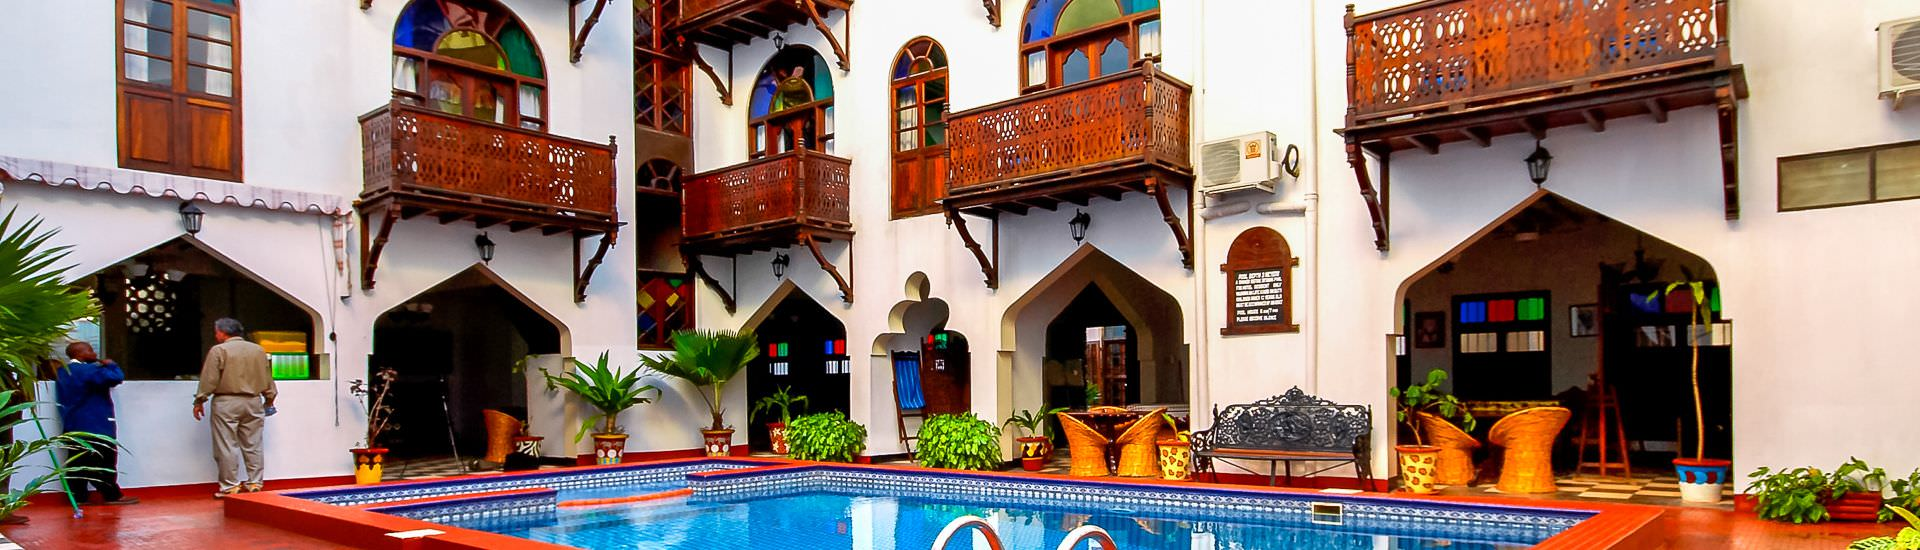 Dhow Palace Hotel, Pool im Innenhof (© Dhow Palace / Chamäleon)